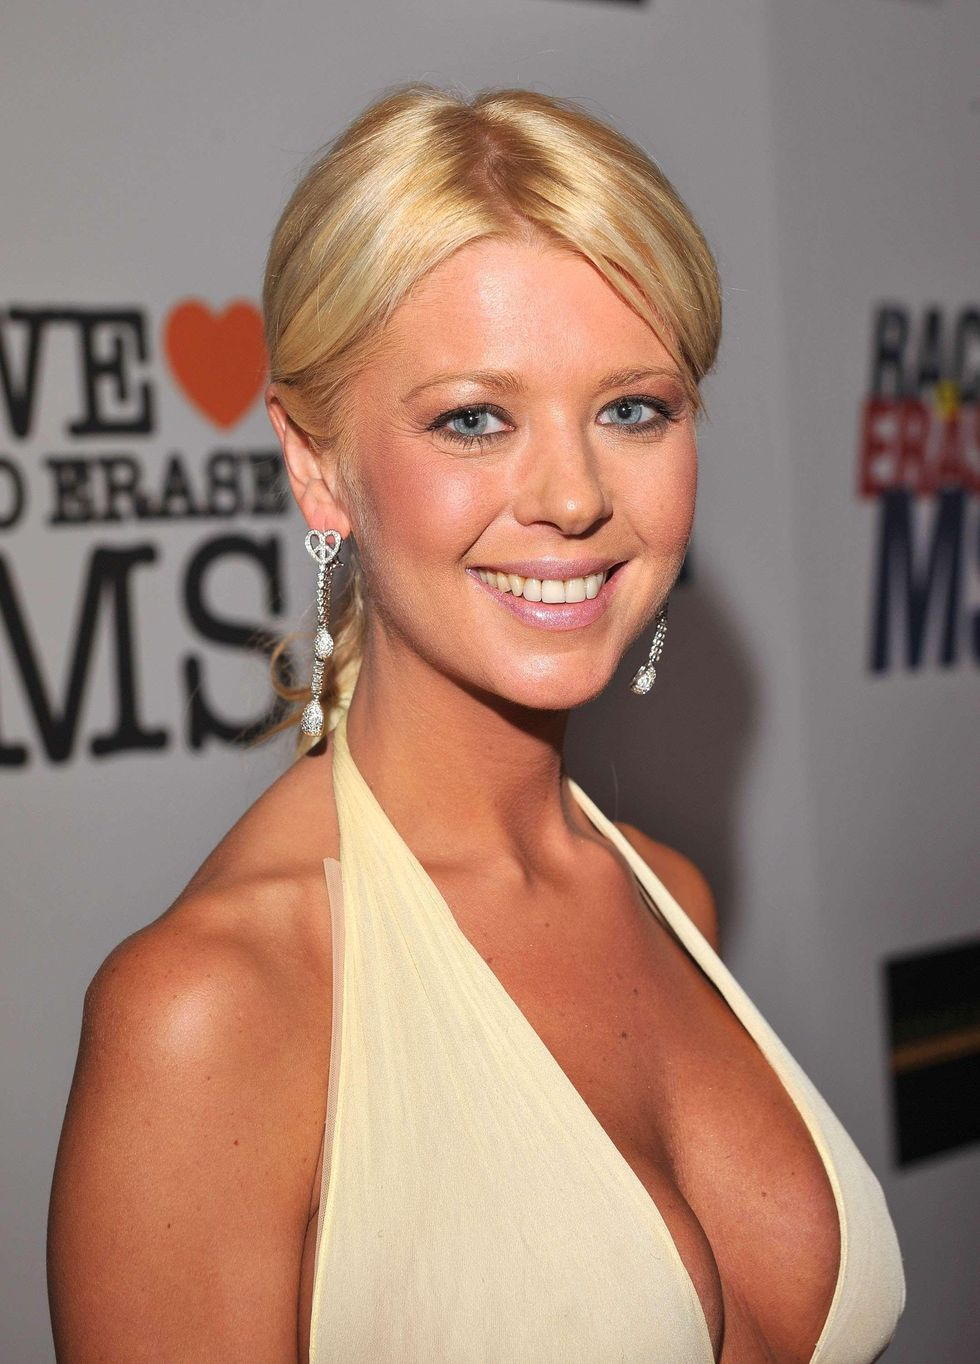 tara-reid-15th-annual-race-to-erase-ms-event-in-los-angeles-01